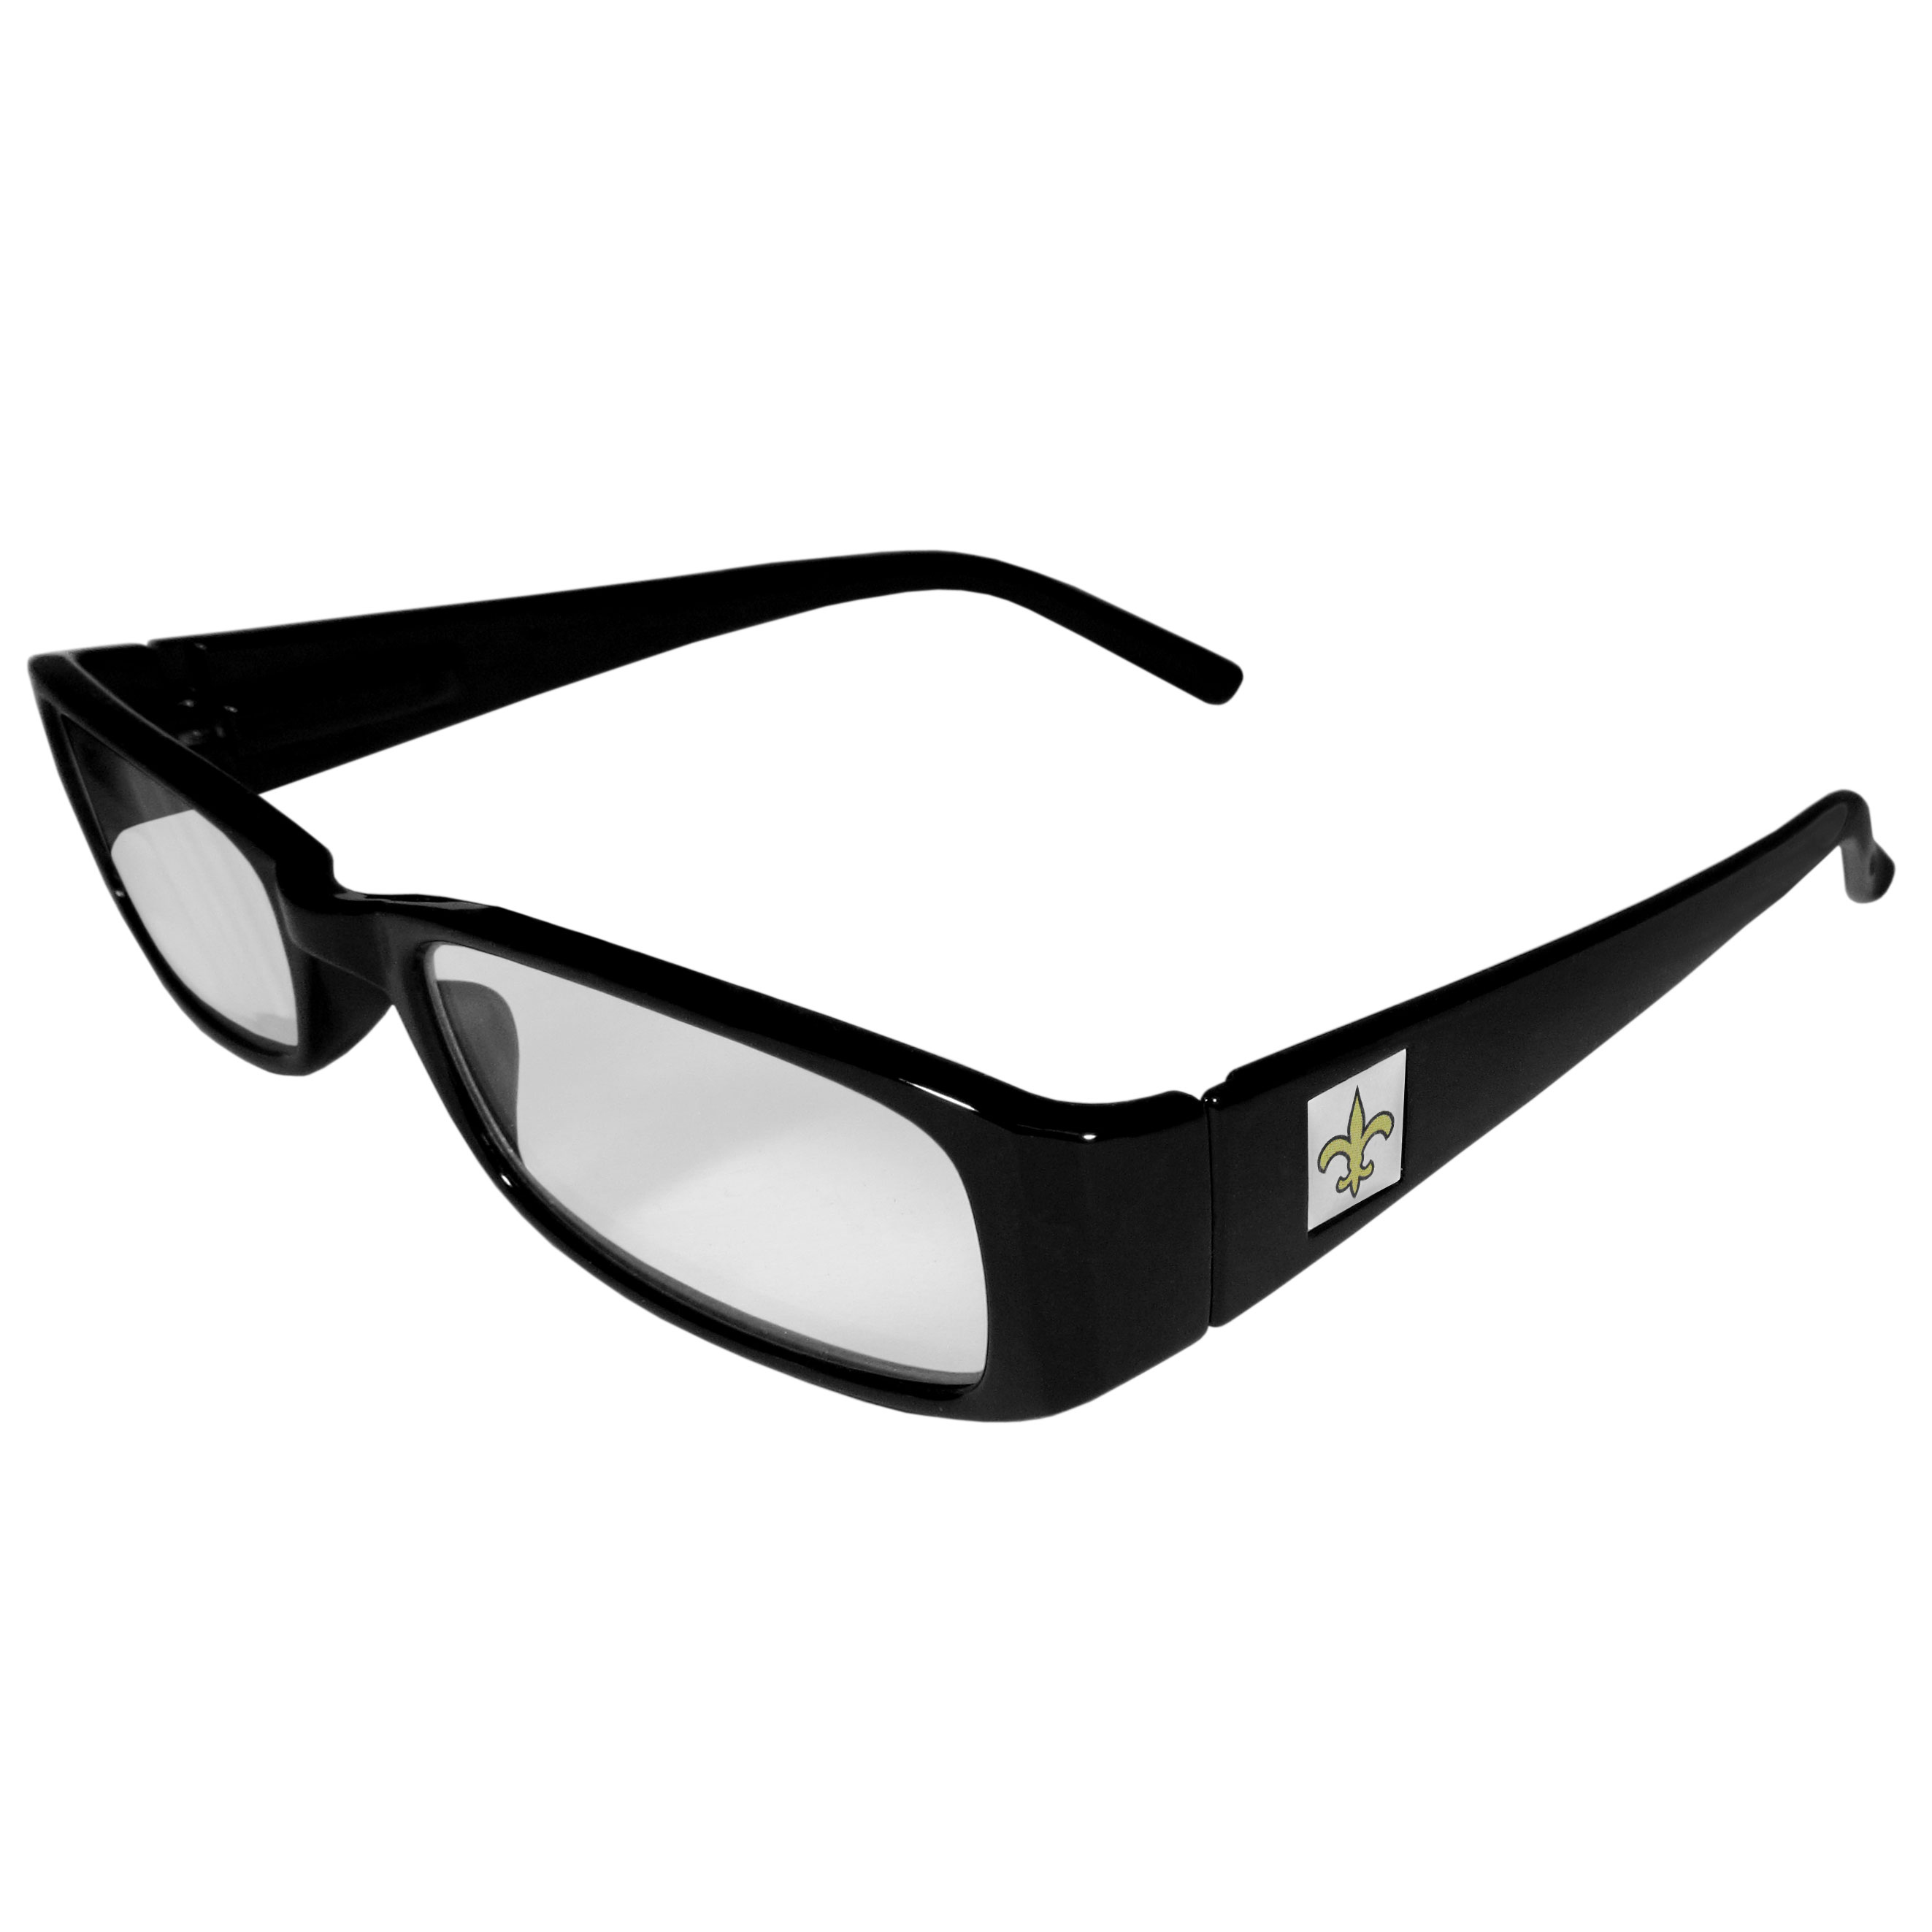 New Orleans Saints Black Reading Glasses +1.25 - Our New Orleans Saints reading glasses are 5.25 inches wide and feature the team logo on each arm. Magnification Power 1.25